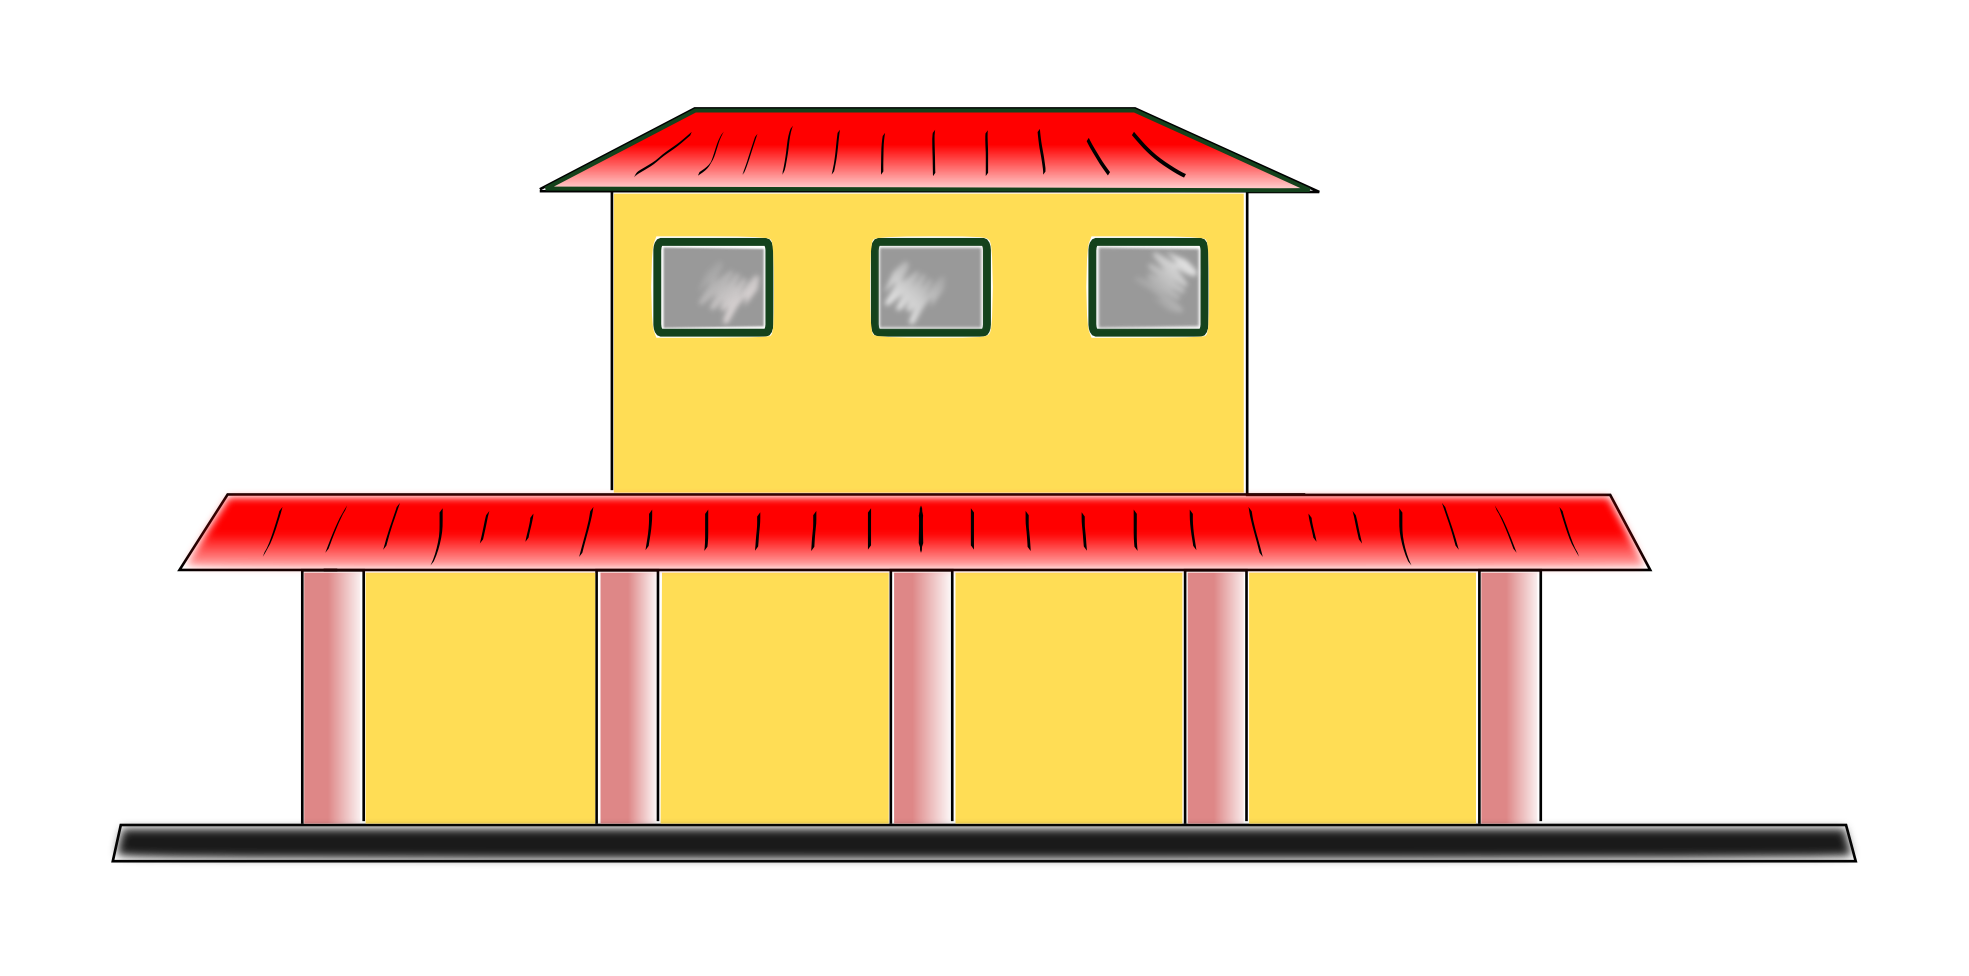 Train depot clipart graphic freeuse library Free Train Station Clipart, Download Free Clip Art, Free Clip Art on ... graphic freeuse library